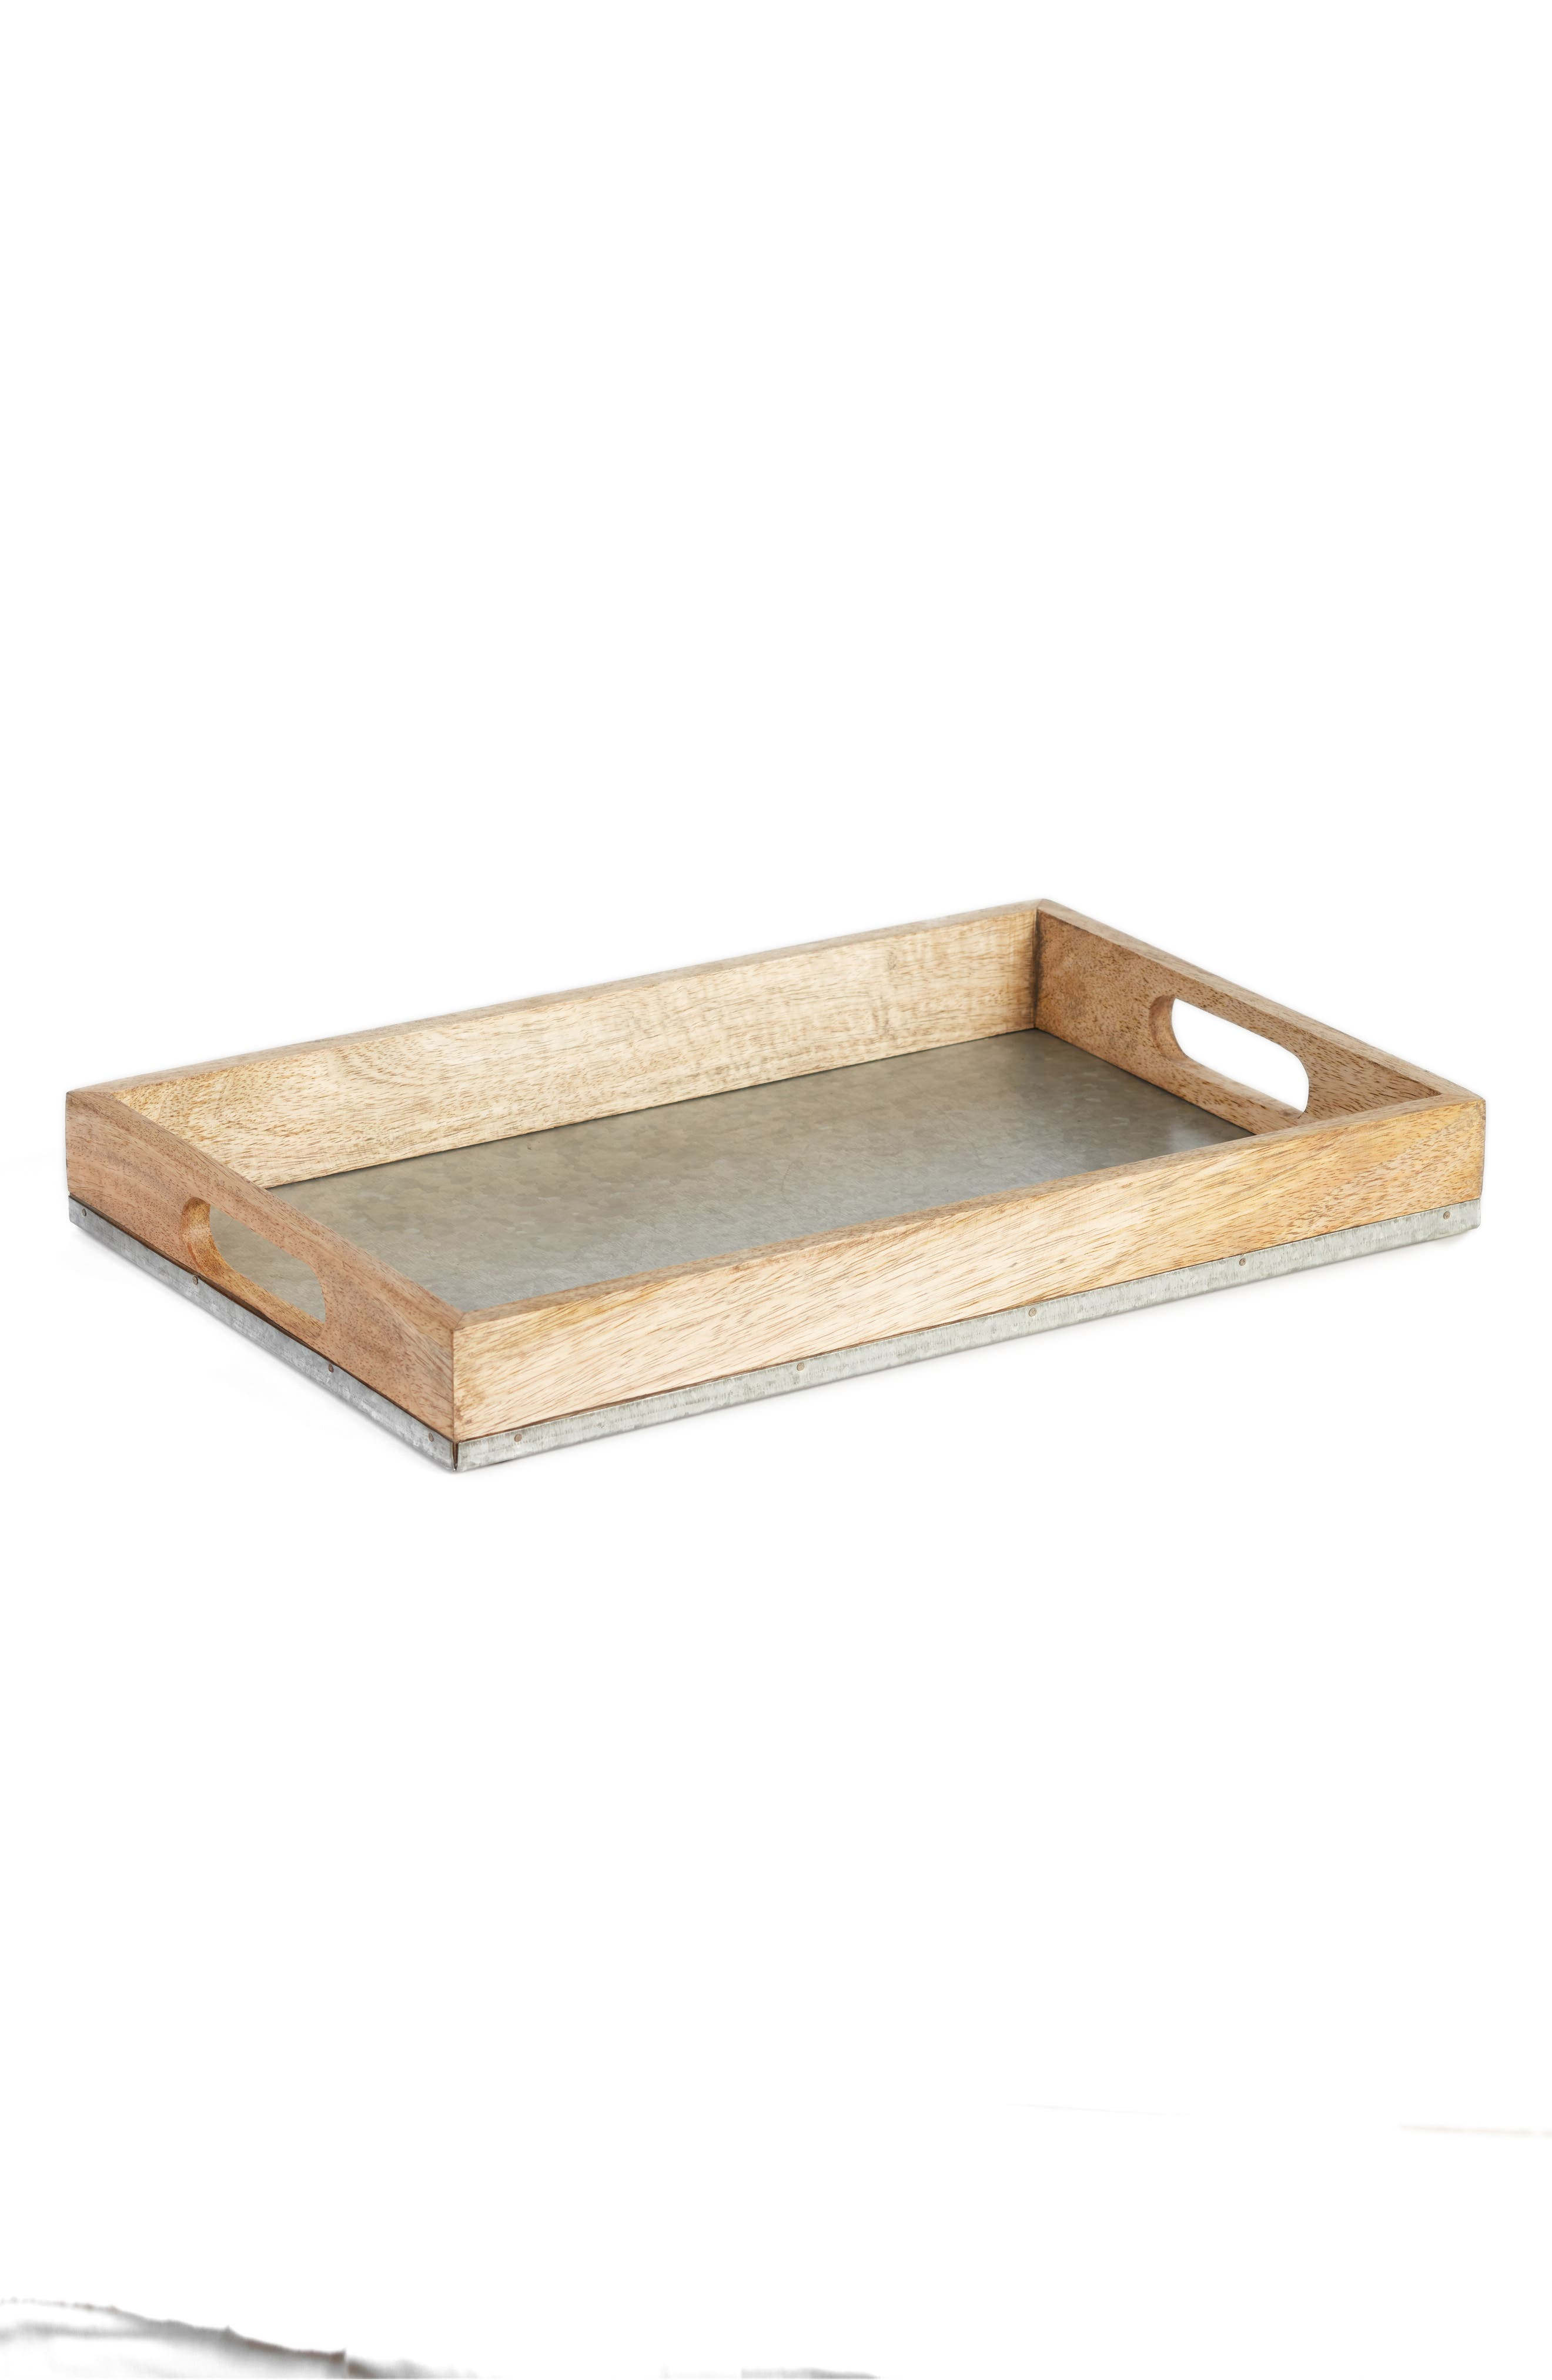 Wood & Galvanized Iron Serving Tray,                         Main,                         color, GREY